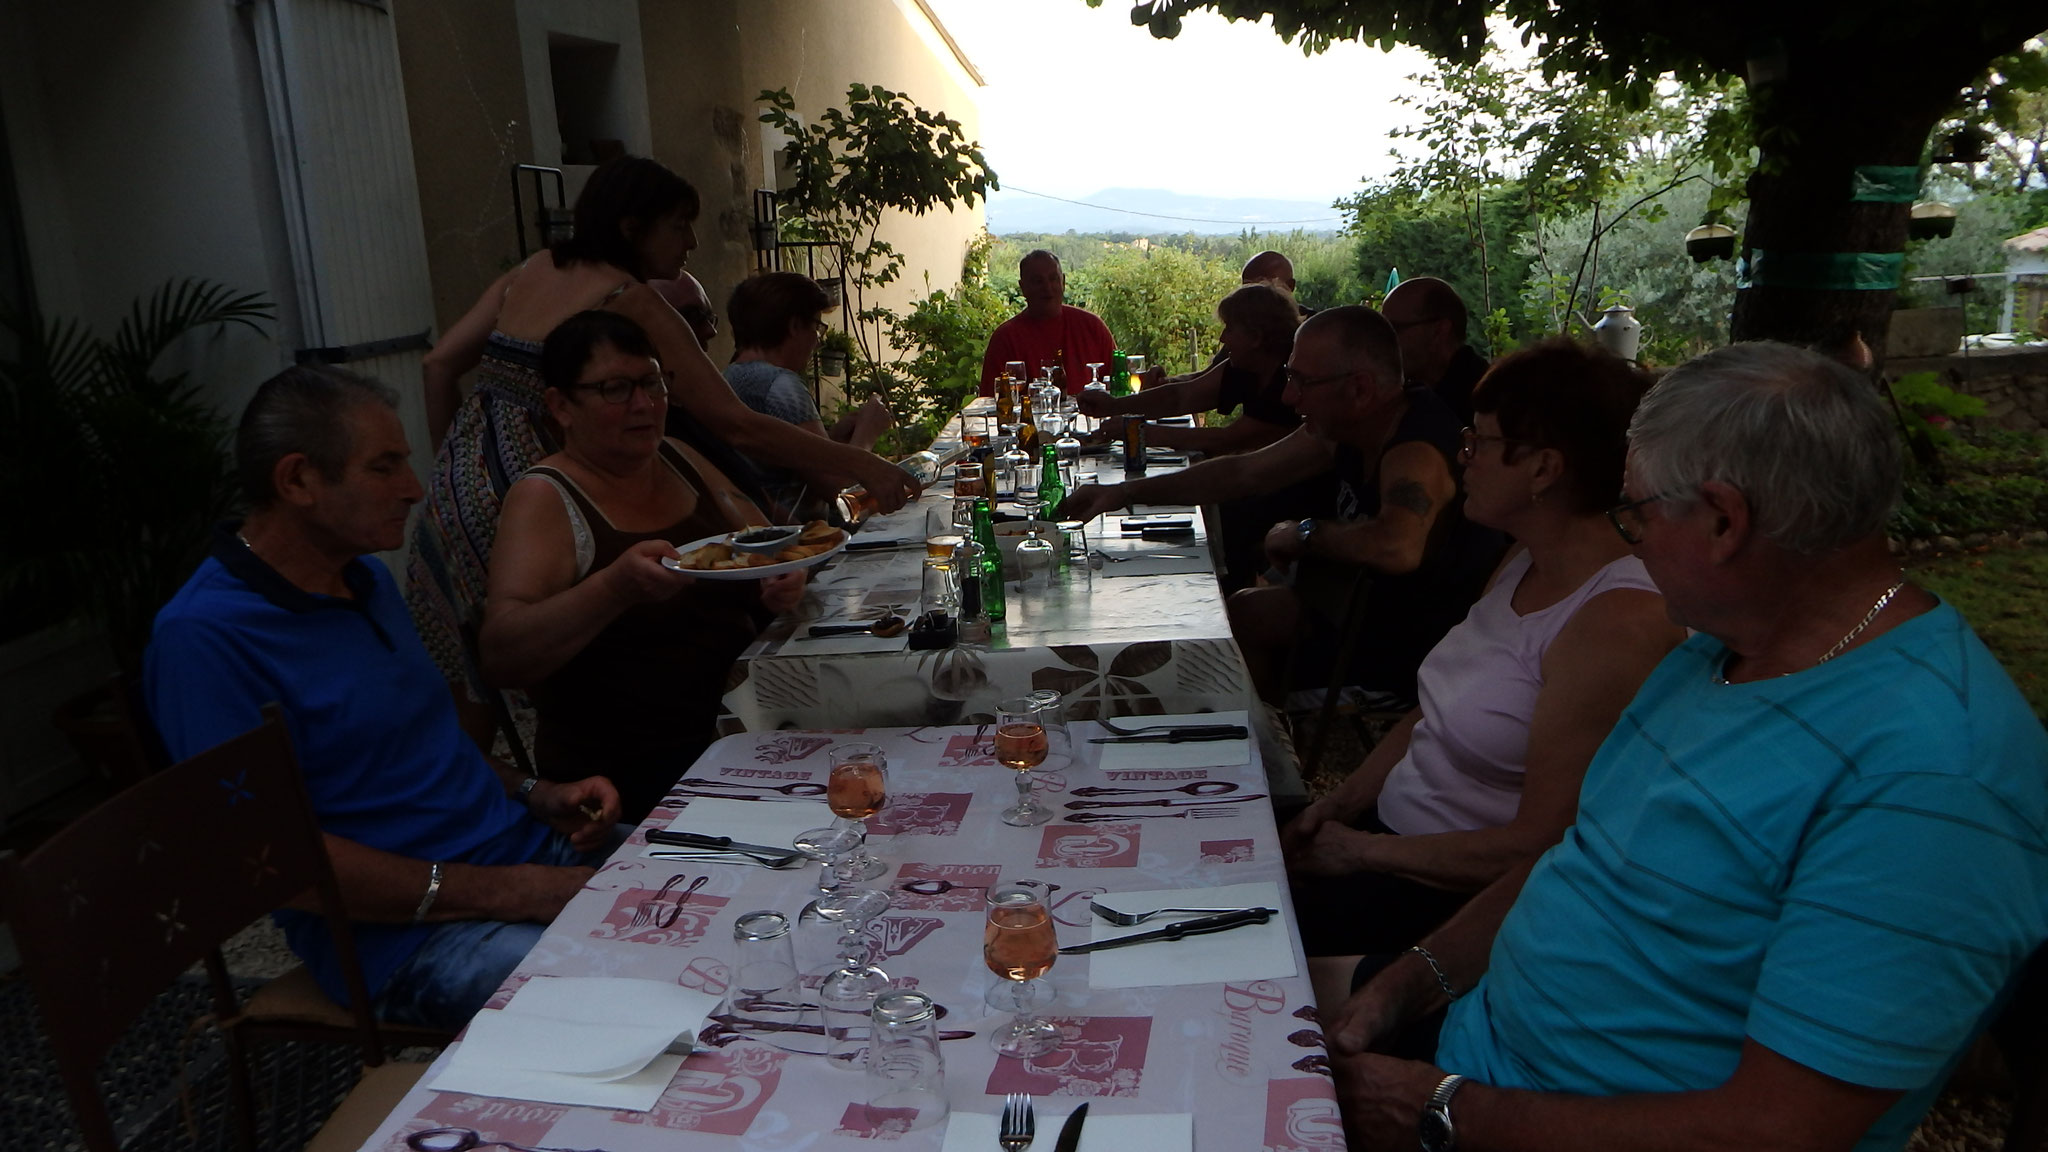 loucardalines-motard-photo-apero-st colombe-gite-B&B-chambre d hote